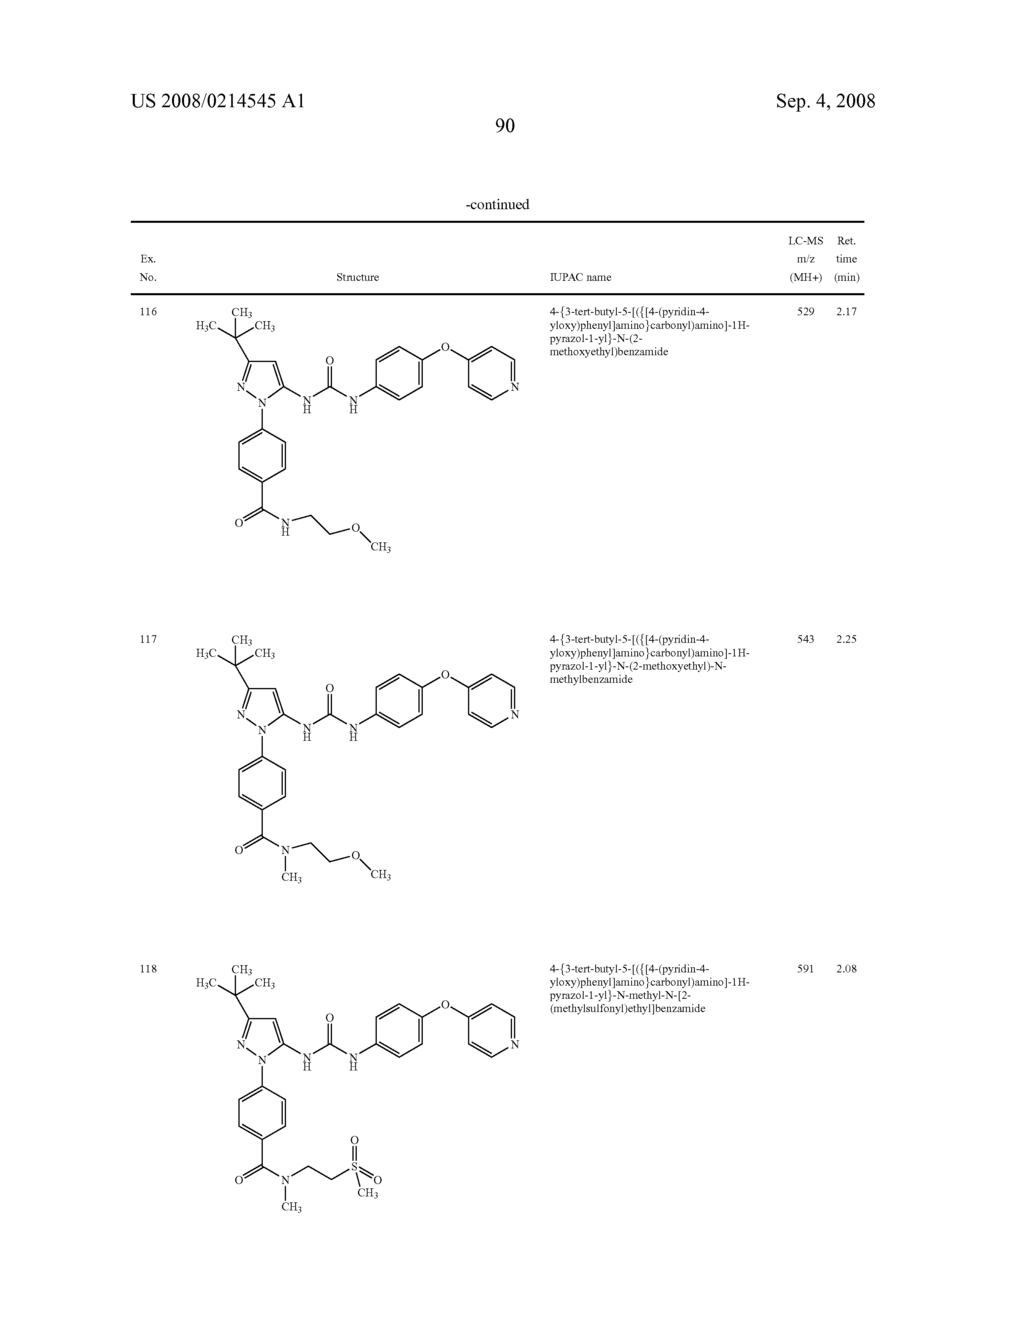 Substituted Pyrazolyl Urea Derivatives Useful in the Treatment of Cancer - diagram, schematic, and image 91